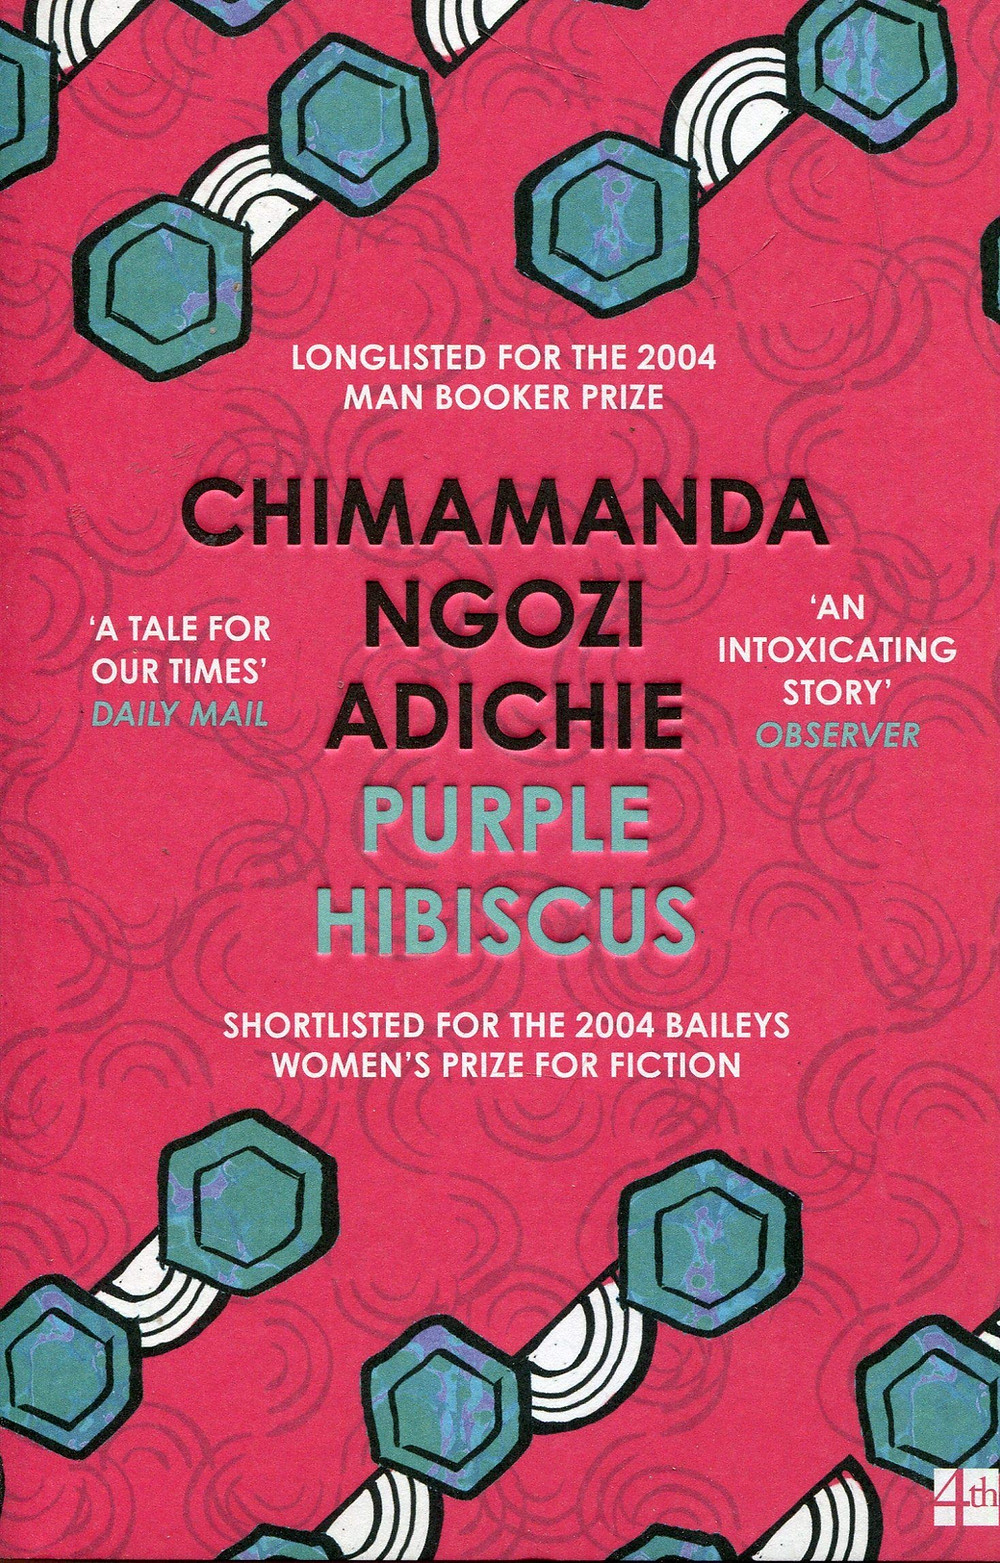 Purple Hibiscus By Chimamanda Ngozi Adichie 336 pages. 2005. : the book slut 4th estate books 4thestate harper collins harpercollins uk thebookslut book reviews nigerian authors